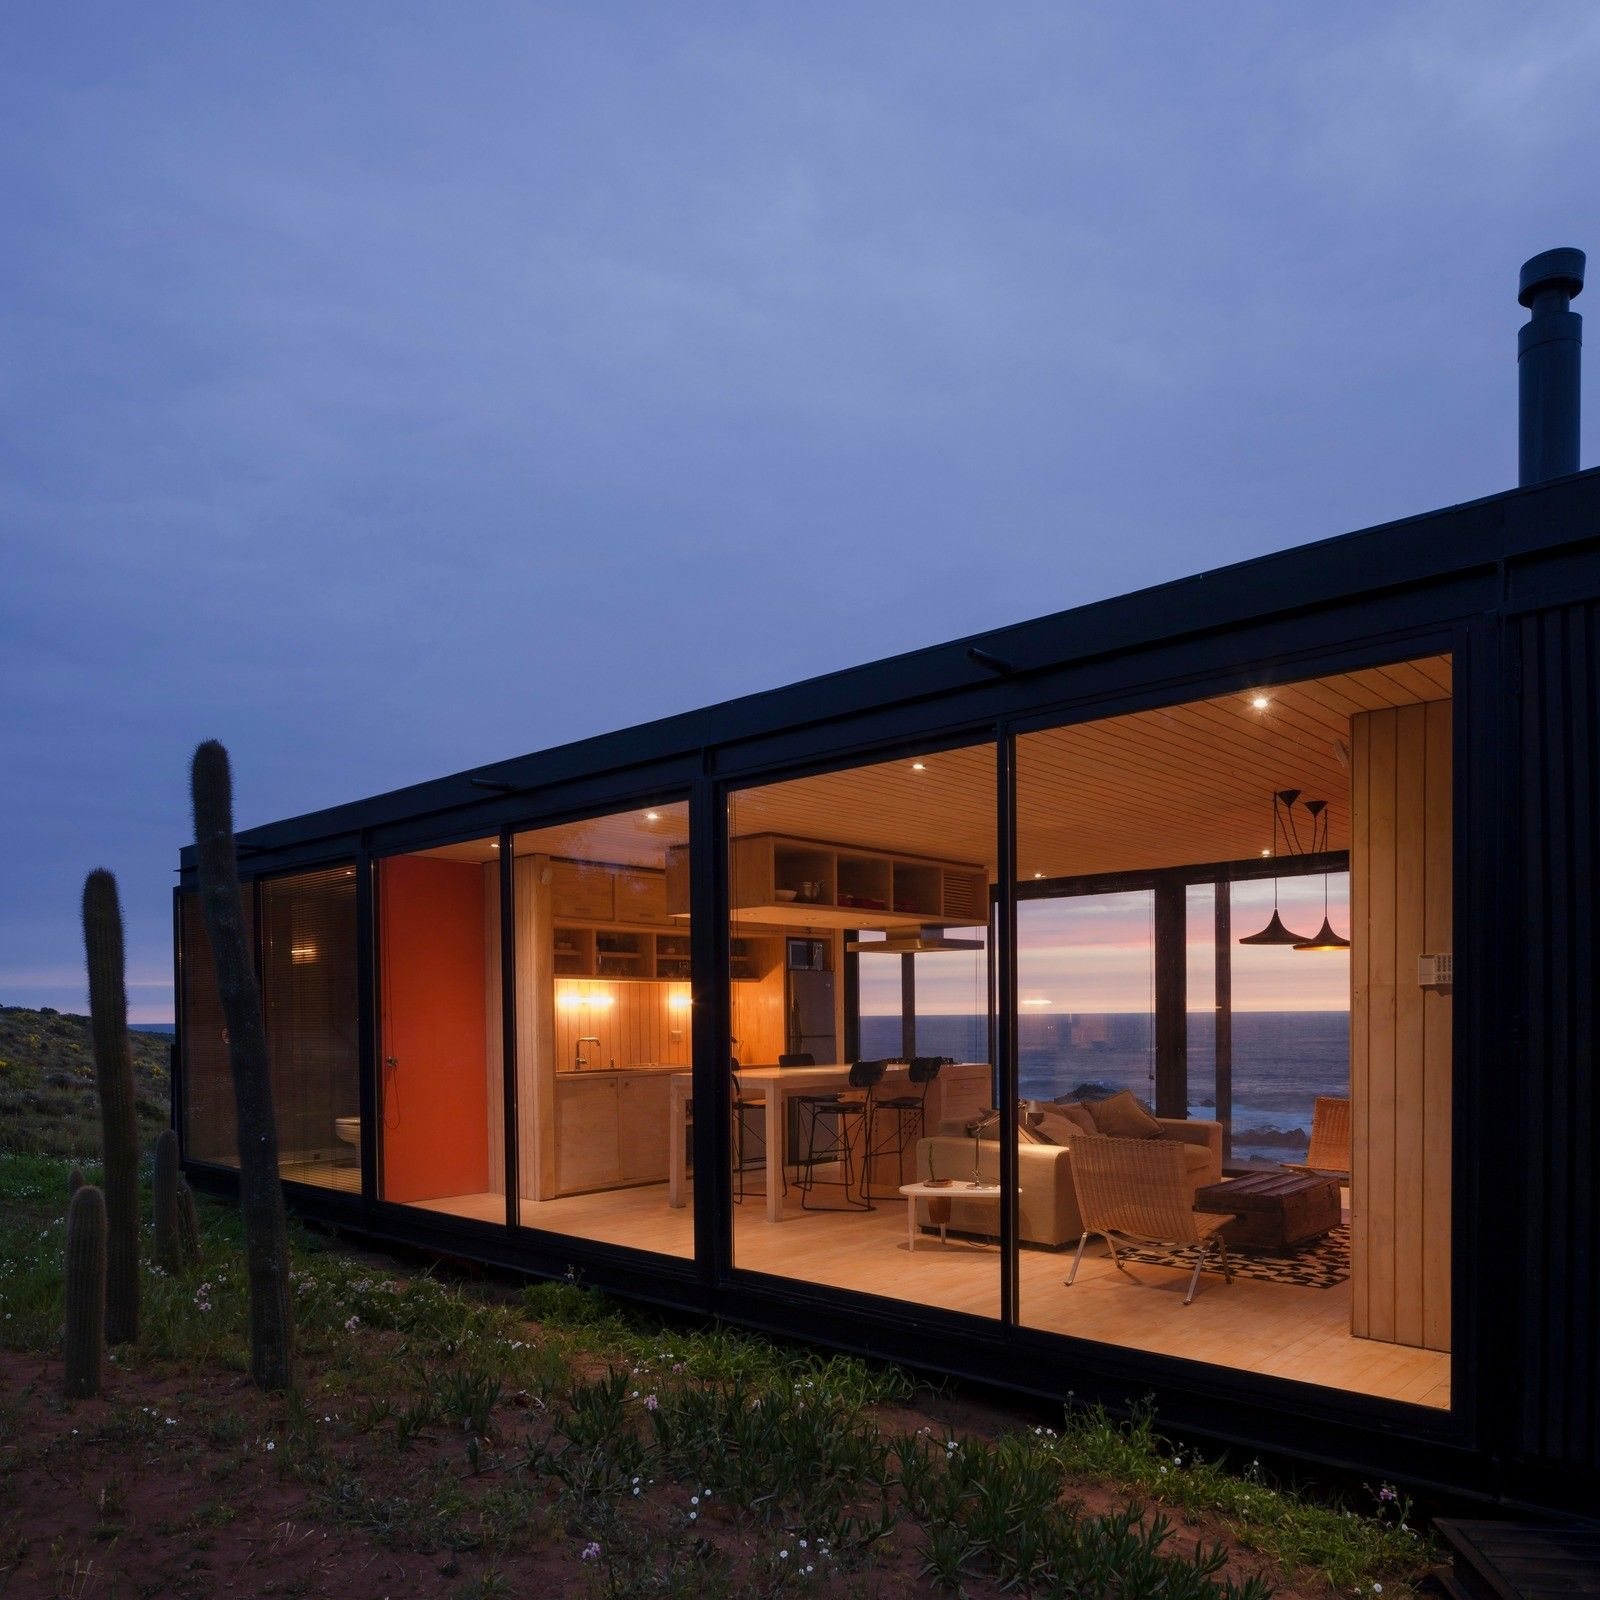 Transportable Modular Create Remote House in Chile